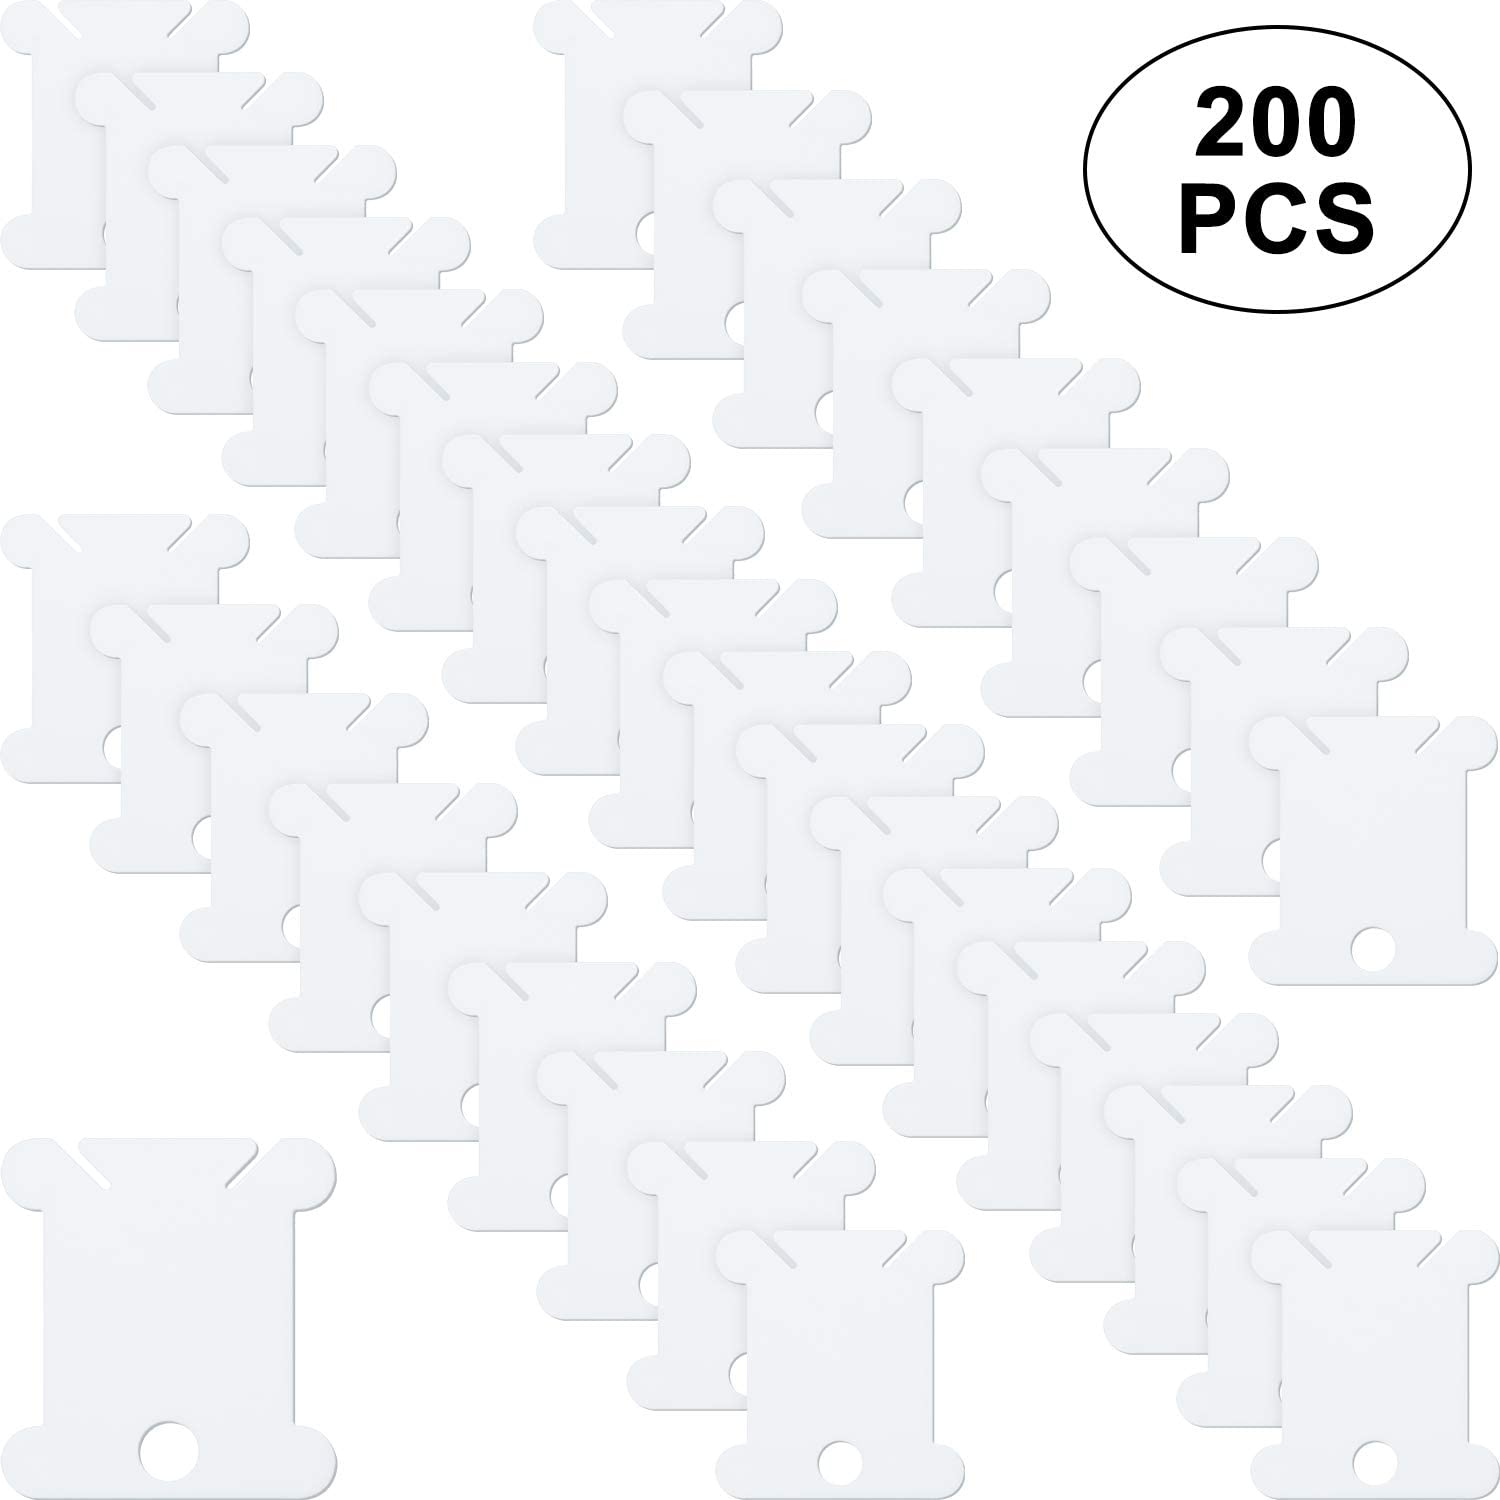 200 Pieces Plastic Floss White Bobbins for Cross Stitch Embroidery Cotton Thread for Craft DIY Sewing Storage